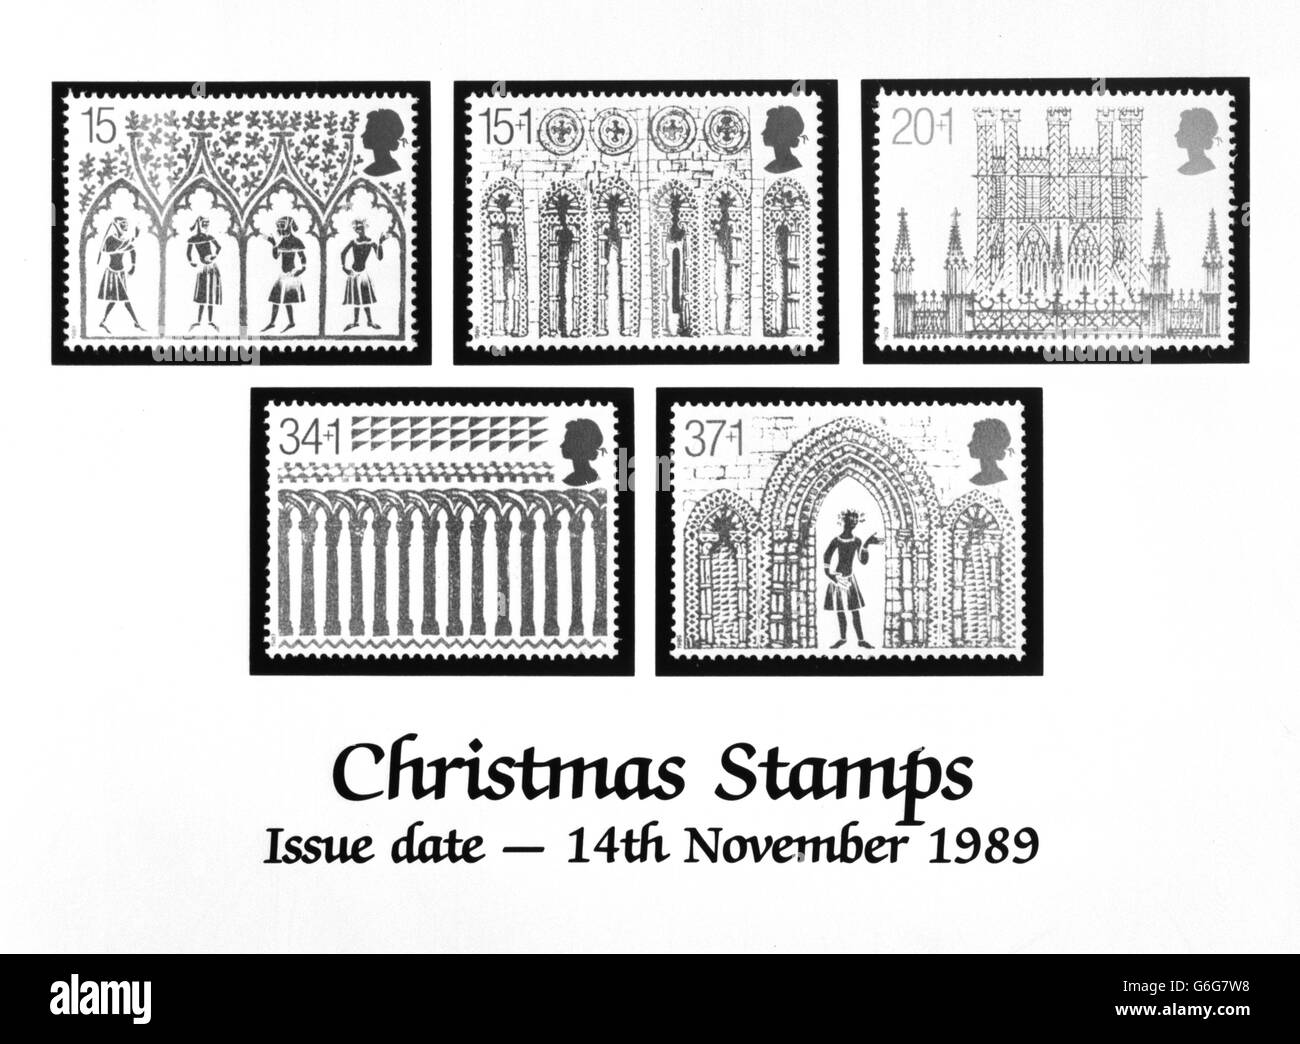 and calender post office service stamp definitive commemorative issue philately stamps paper mystamp offices page postage